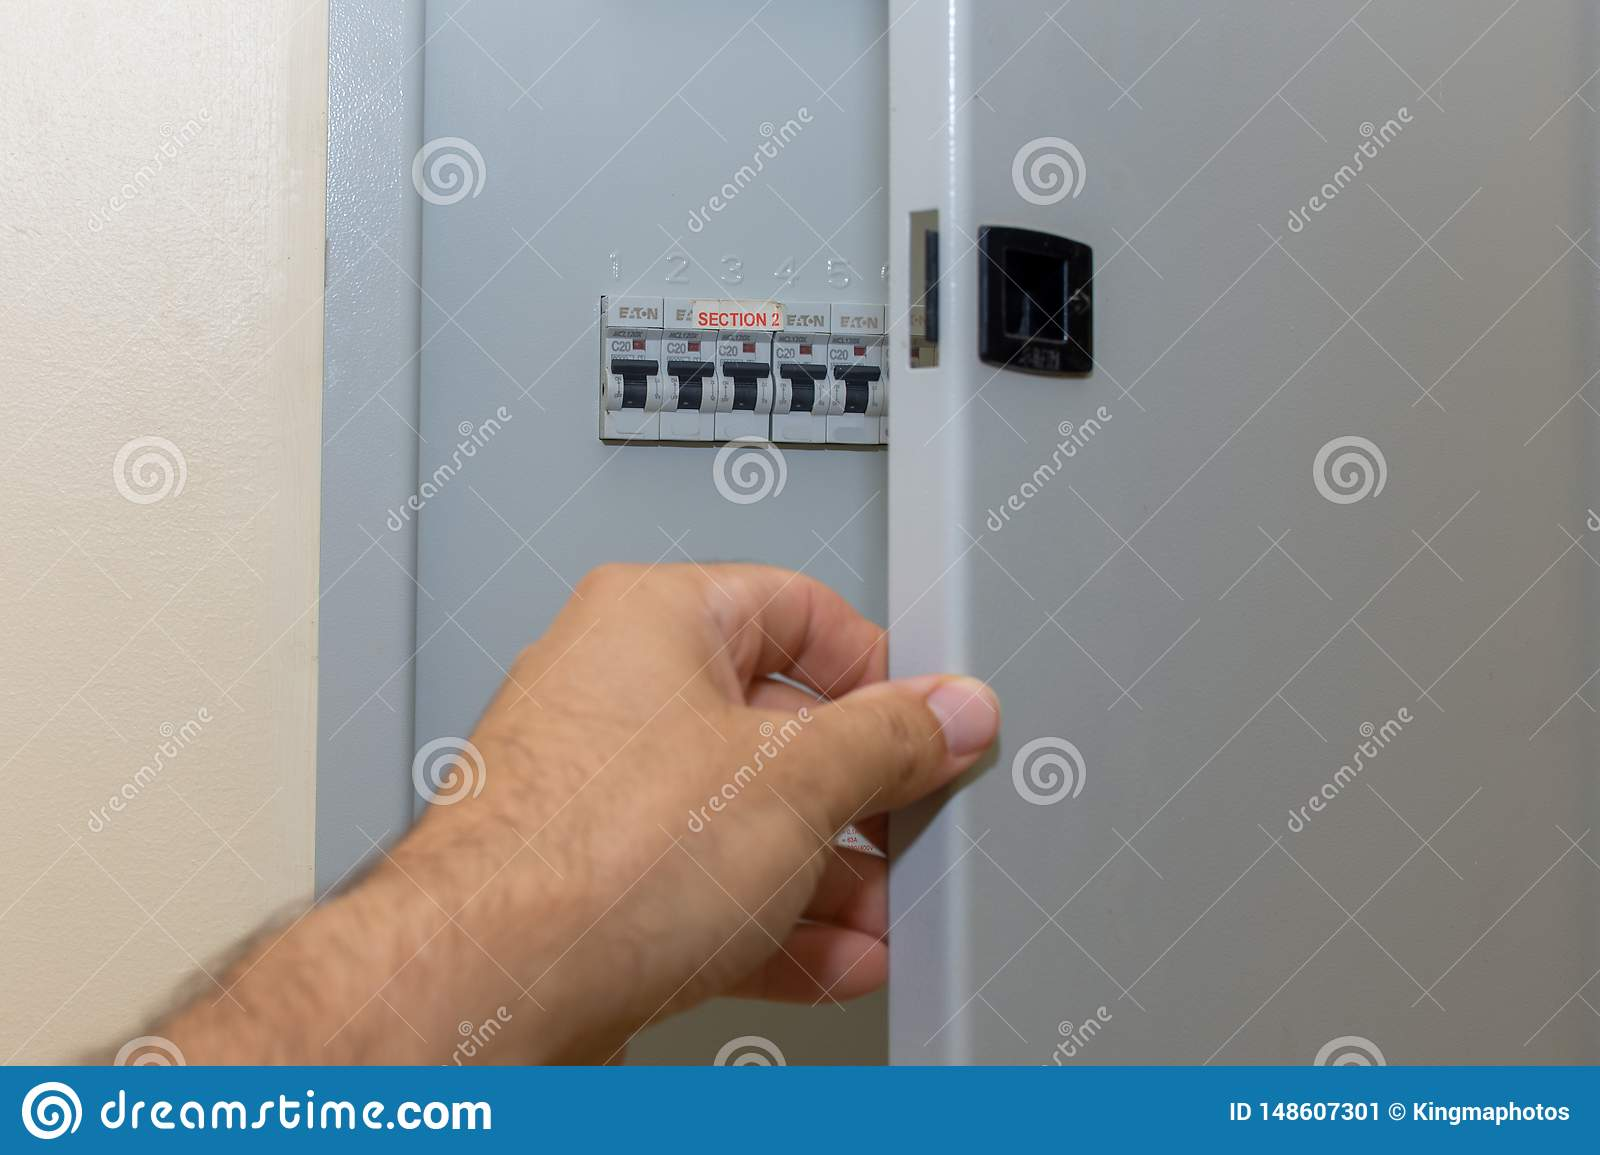 Hand opens fuse box in a residential house looking at the electrical breakers fixing loss of power